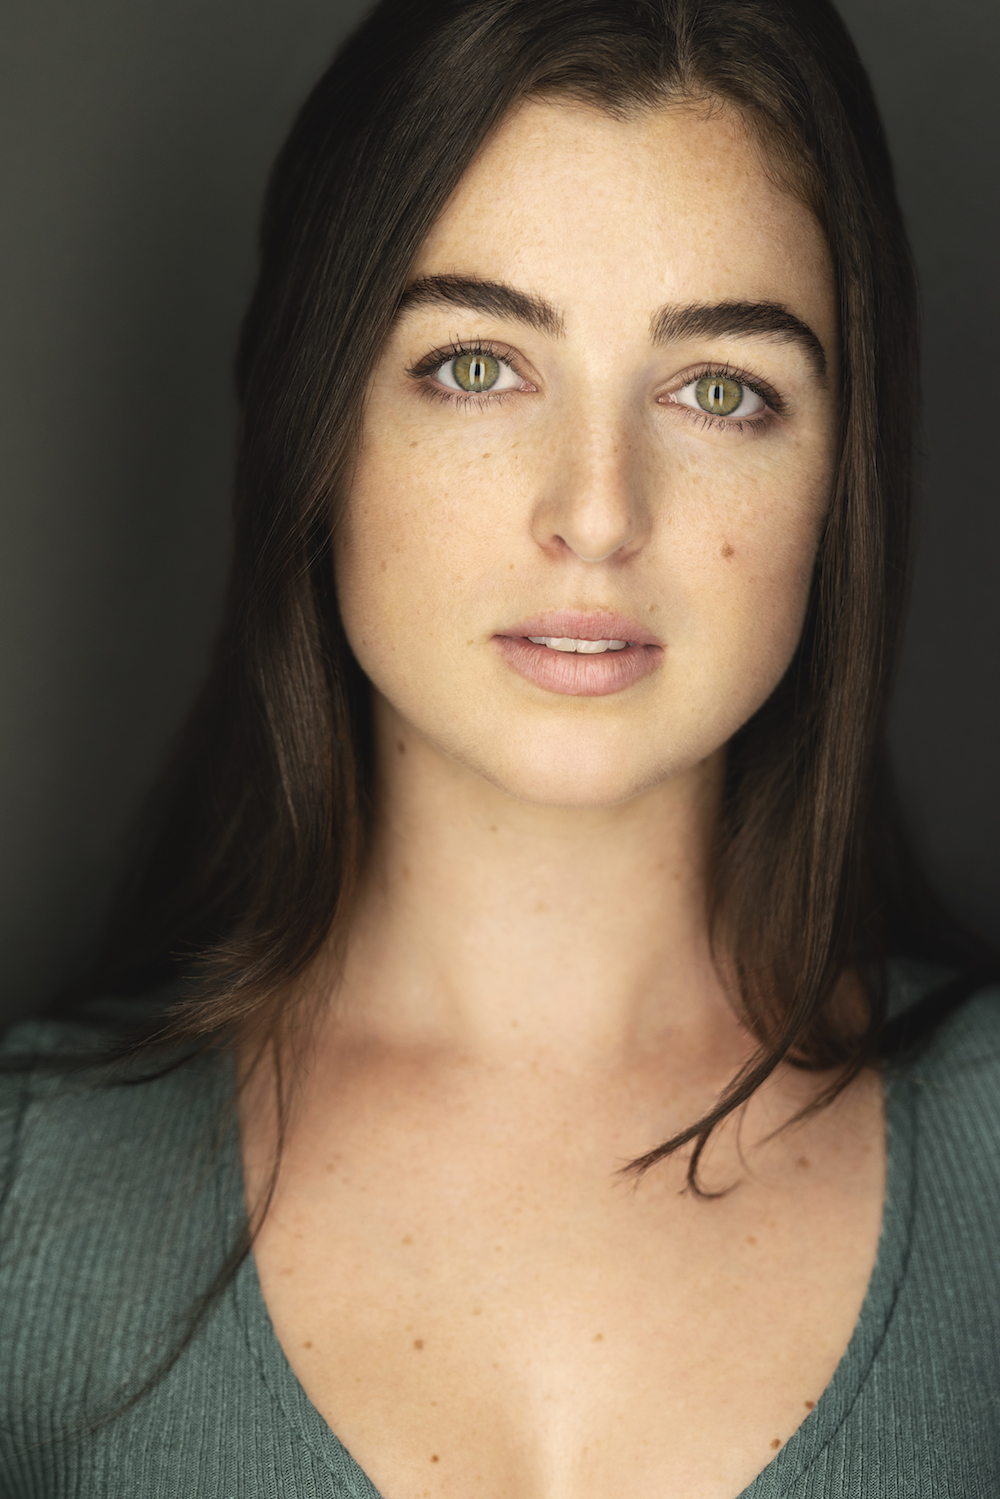 Madeleine is an actor based in New York City. - In May of 2019, she completed NYU's Graduate Acting Program. Find her NYU GradActing website here.